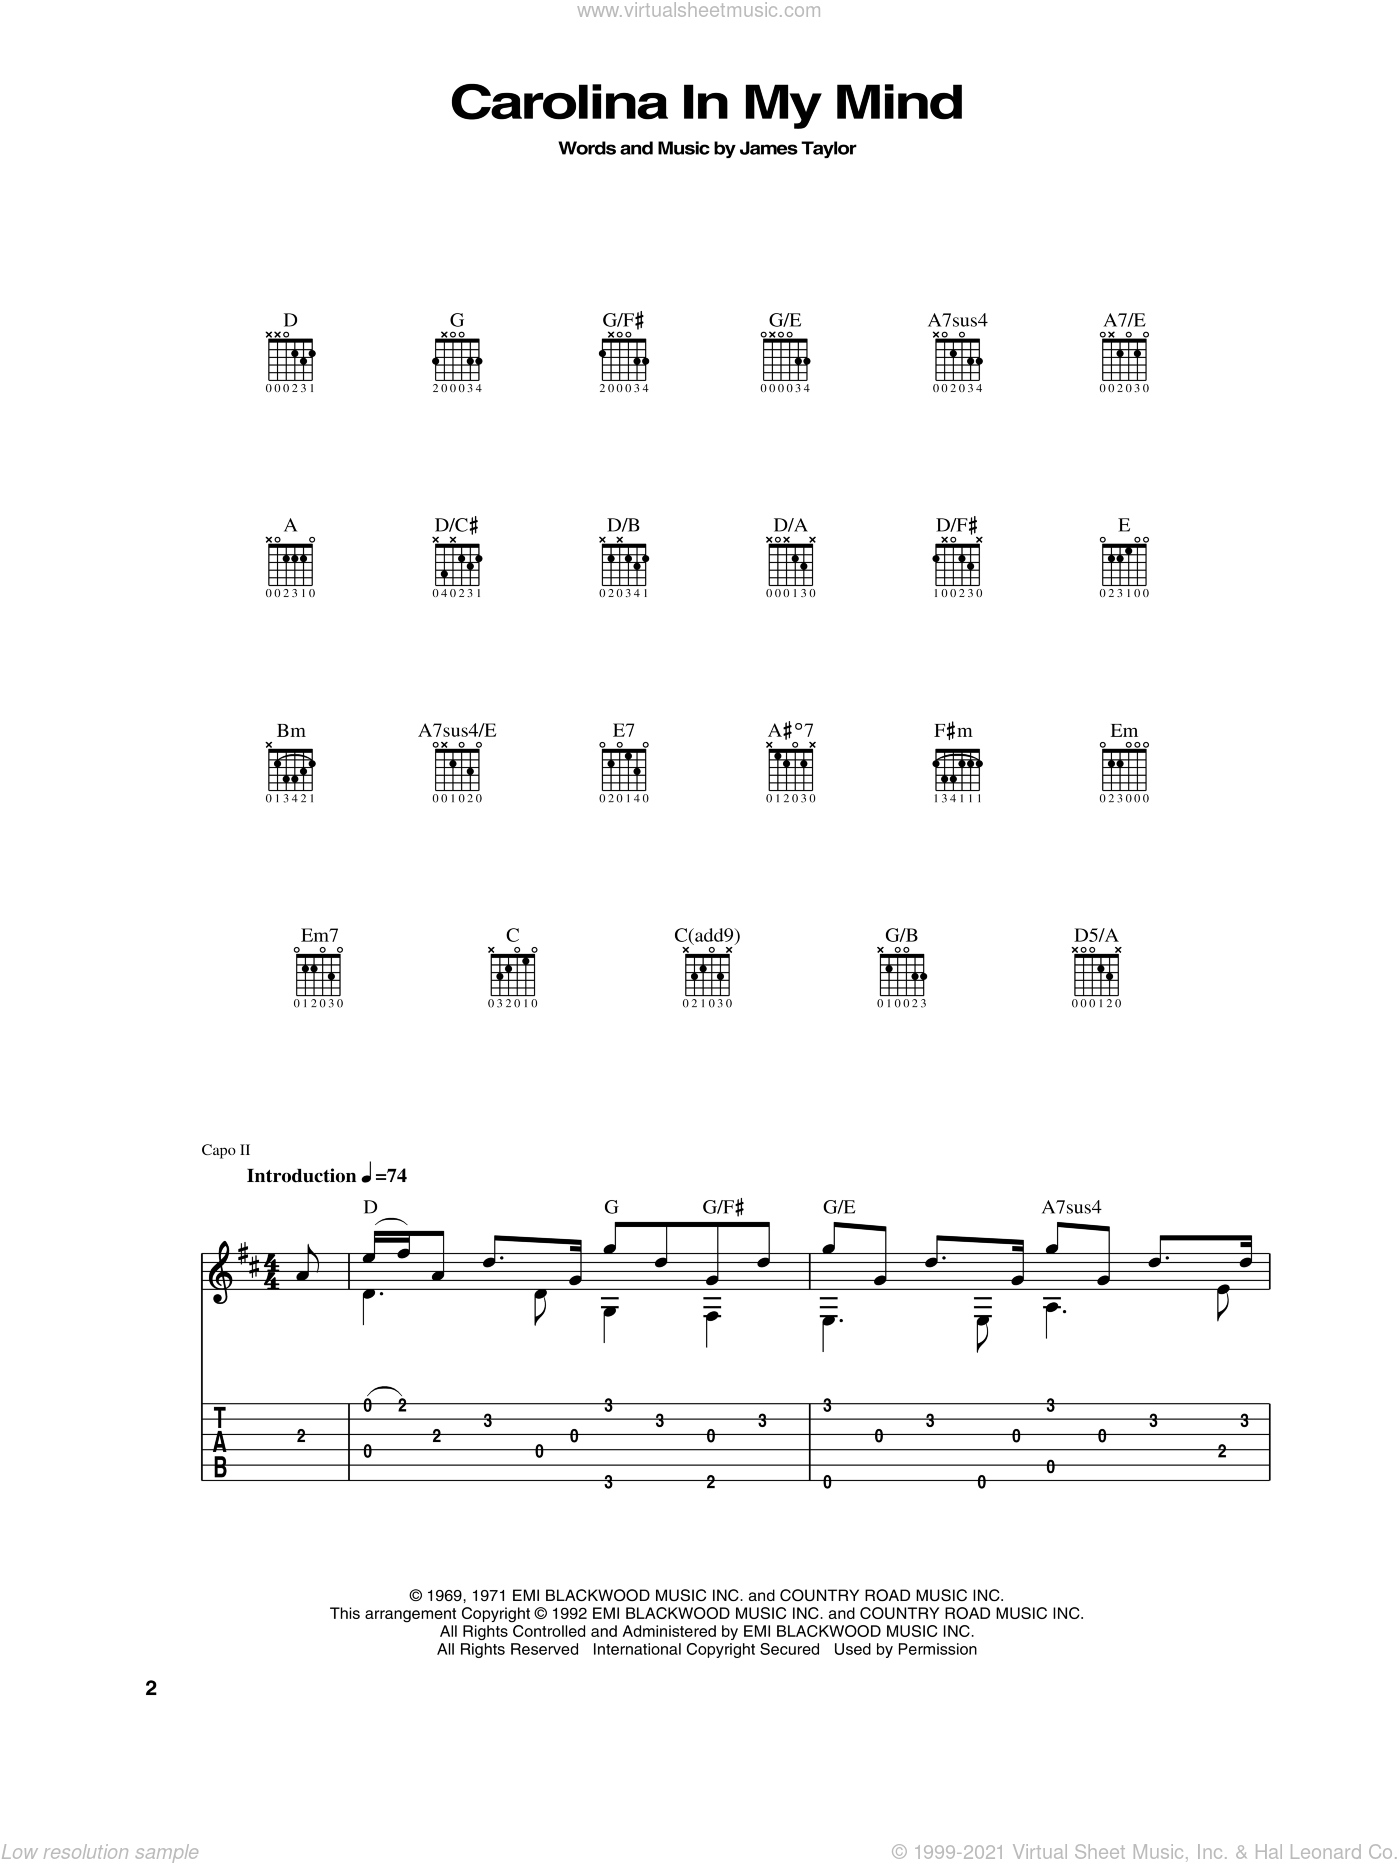 Carolina In My Mind sheet music for guitar (tablature) by James Taylor